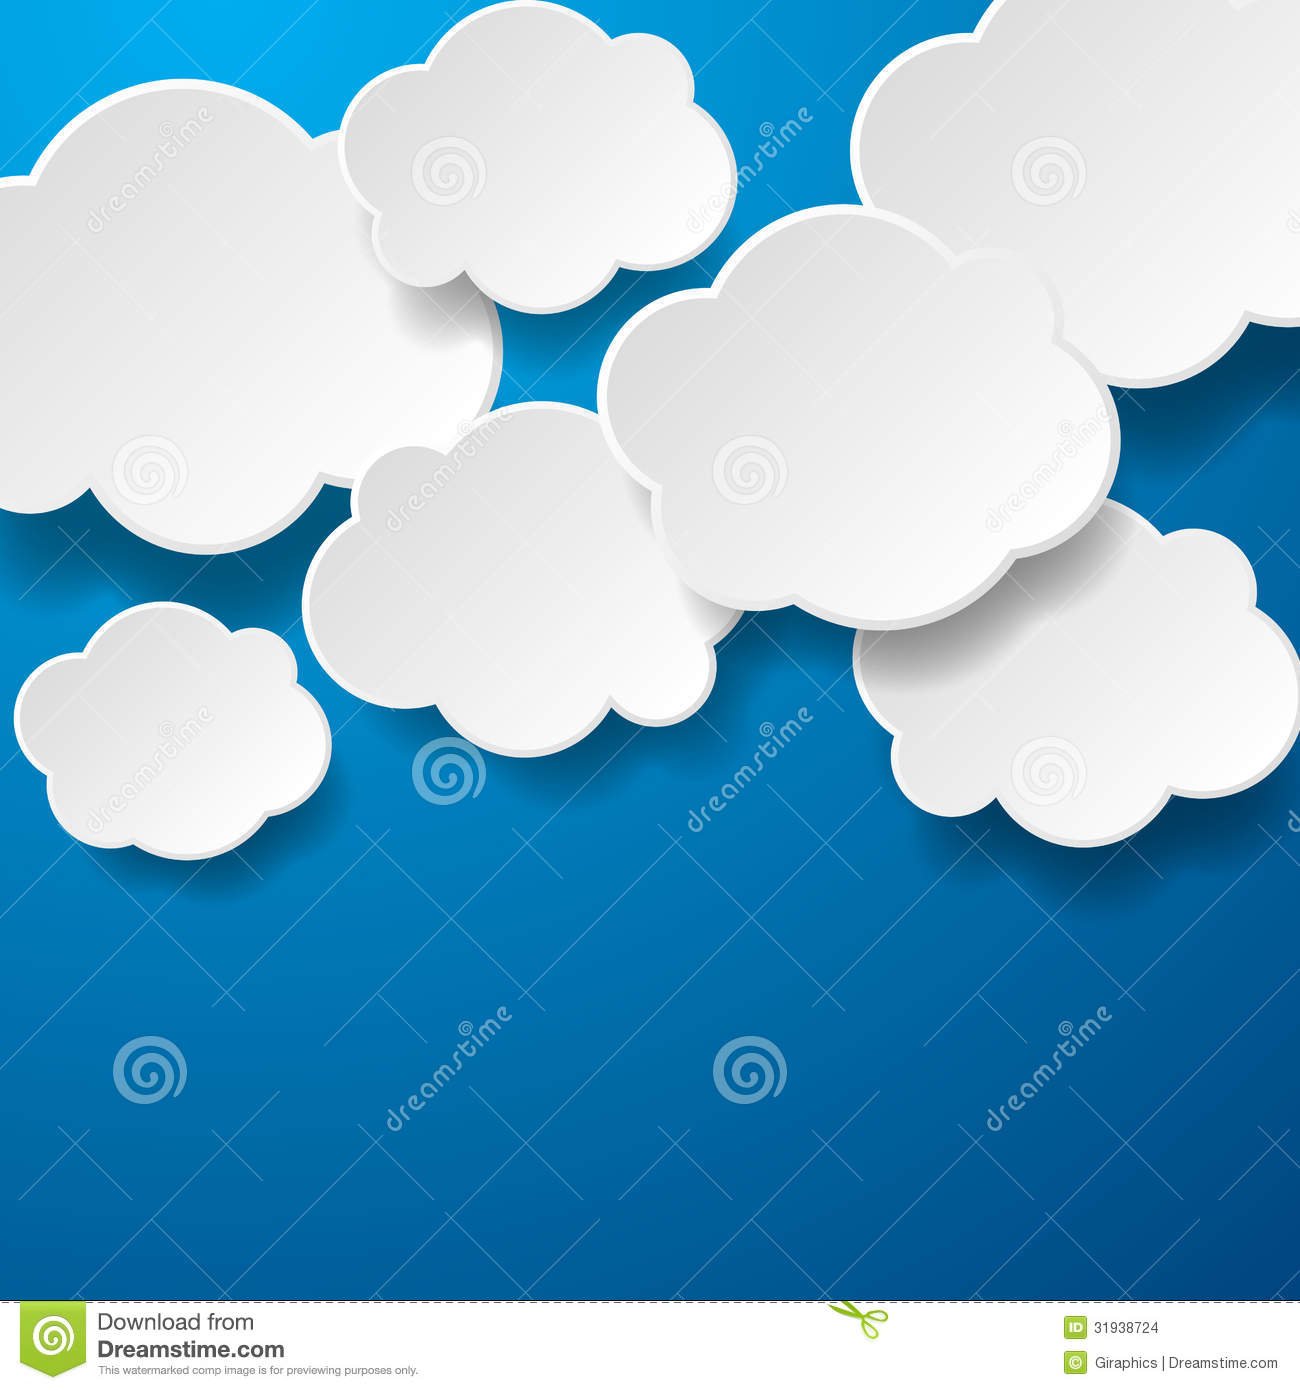 Floating paper clouds background stock vector for How to make a paper cloud